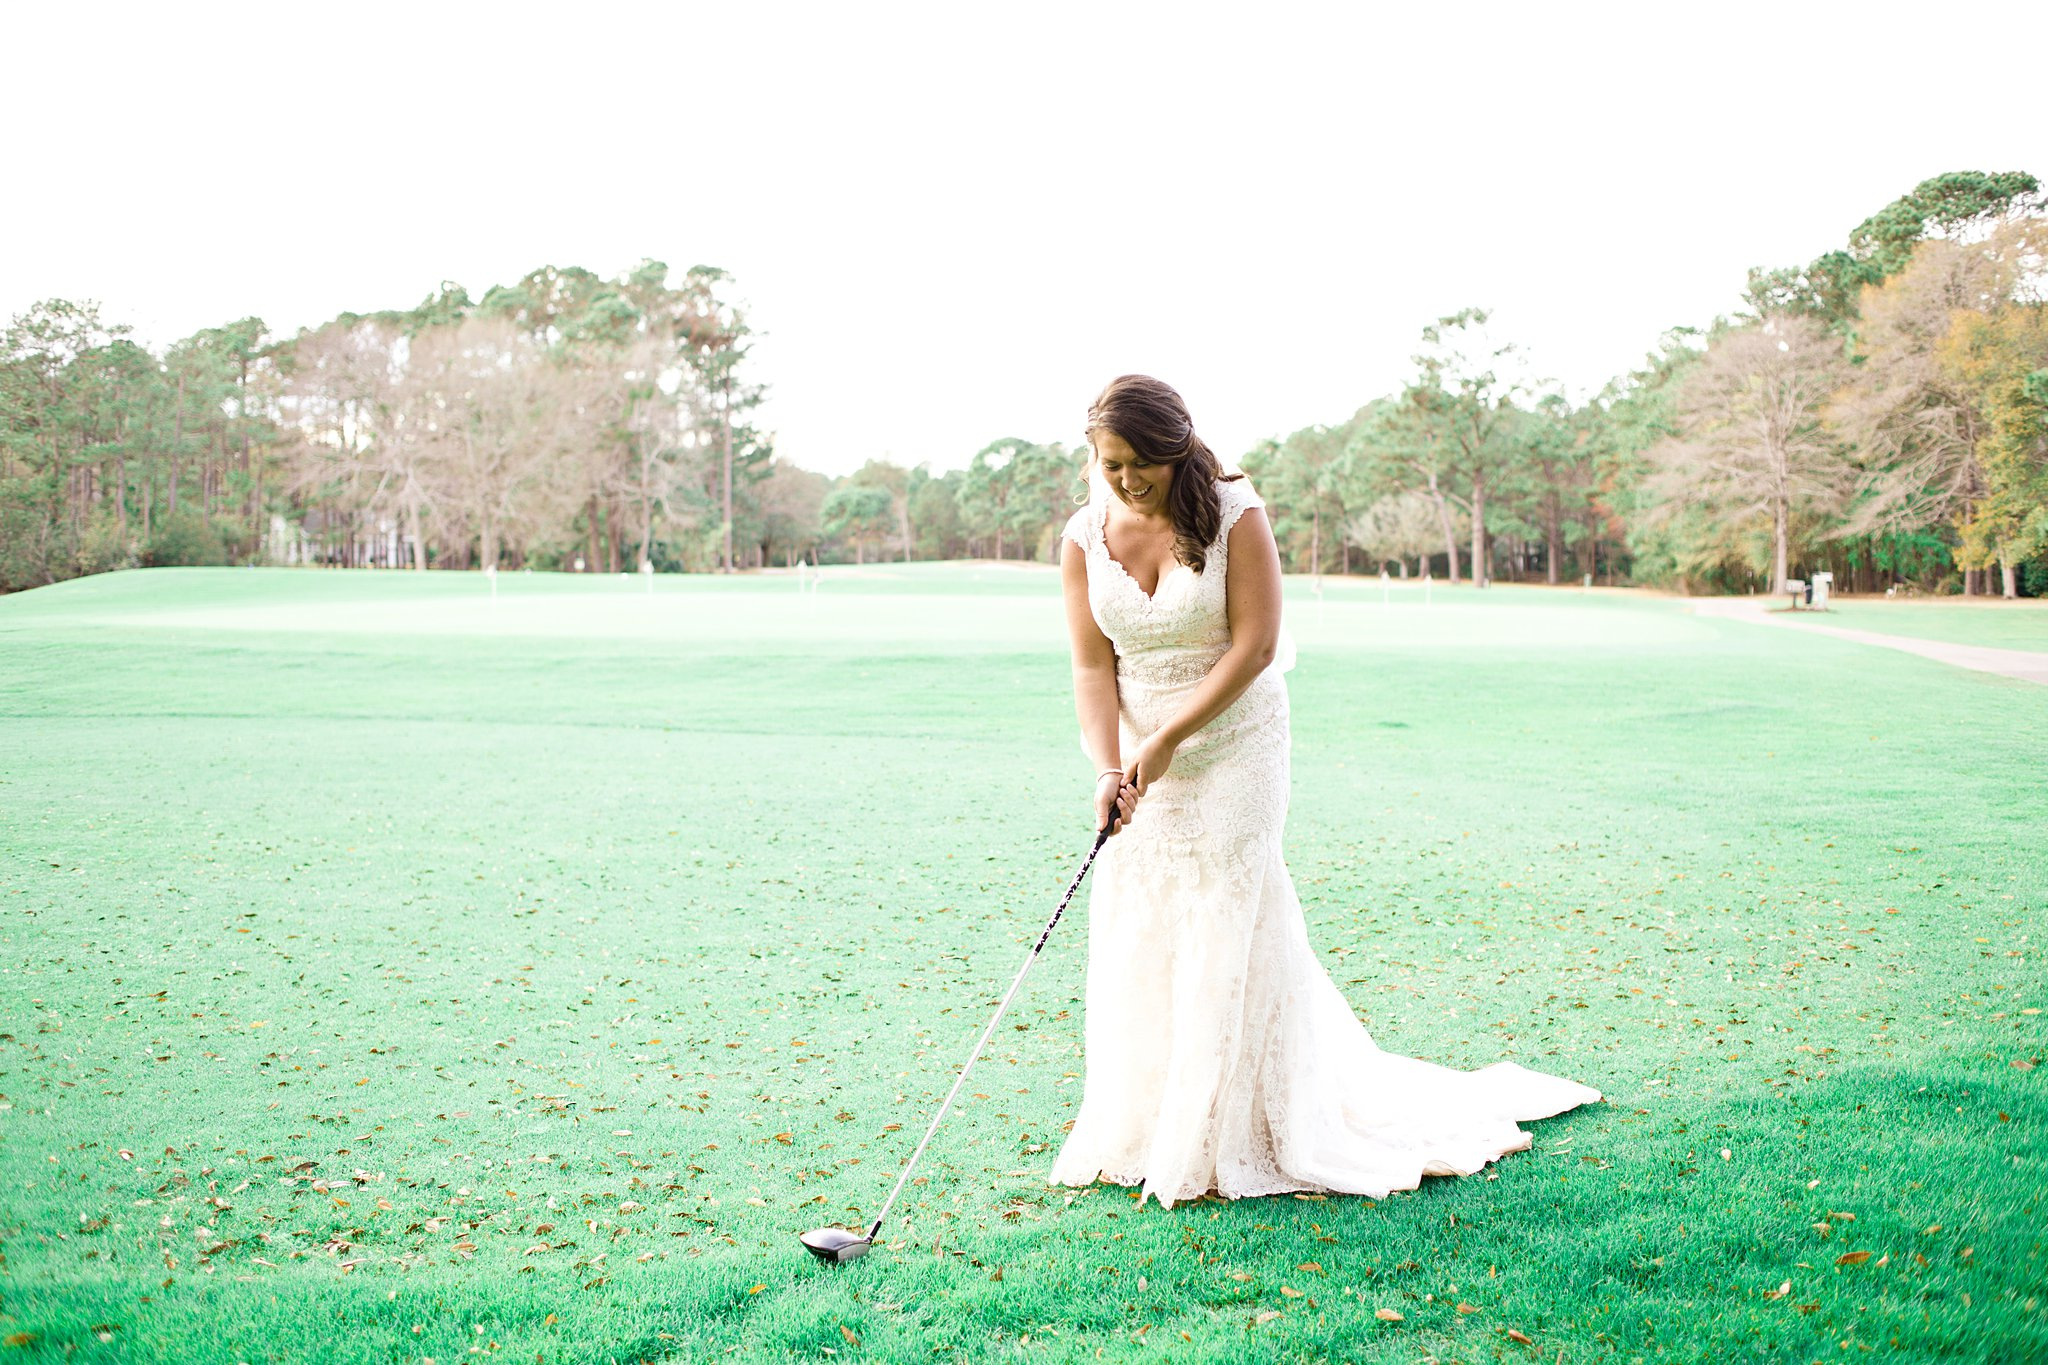 litchfield-golf-country-club-bridal-session-pawleys-island-sc-photos_0133.jpg